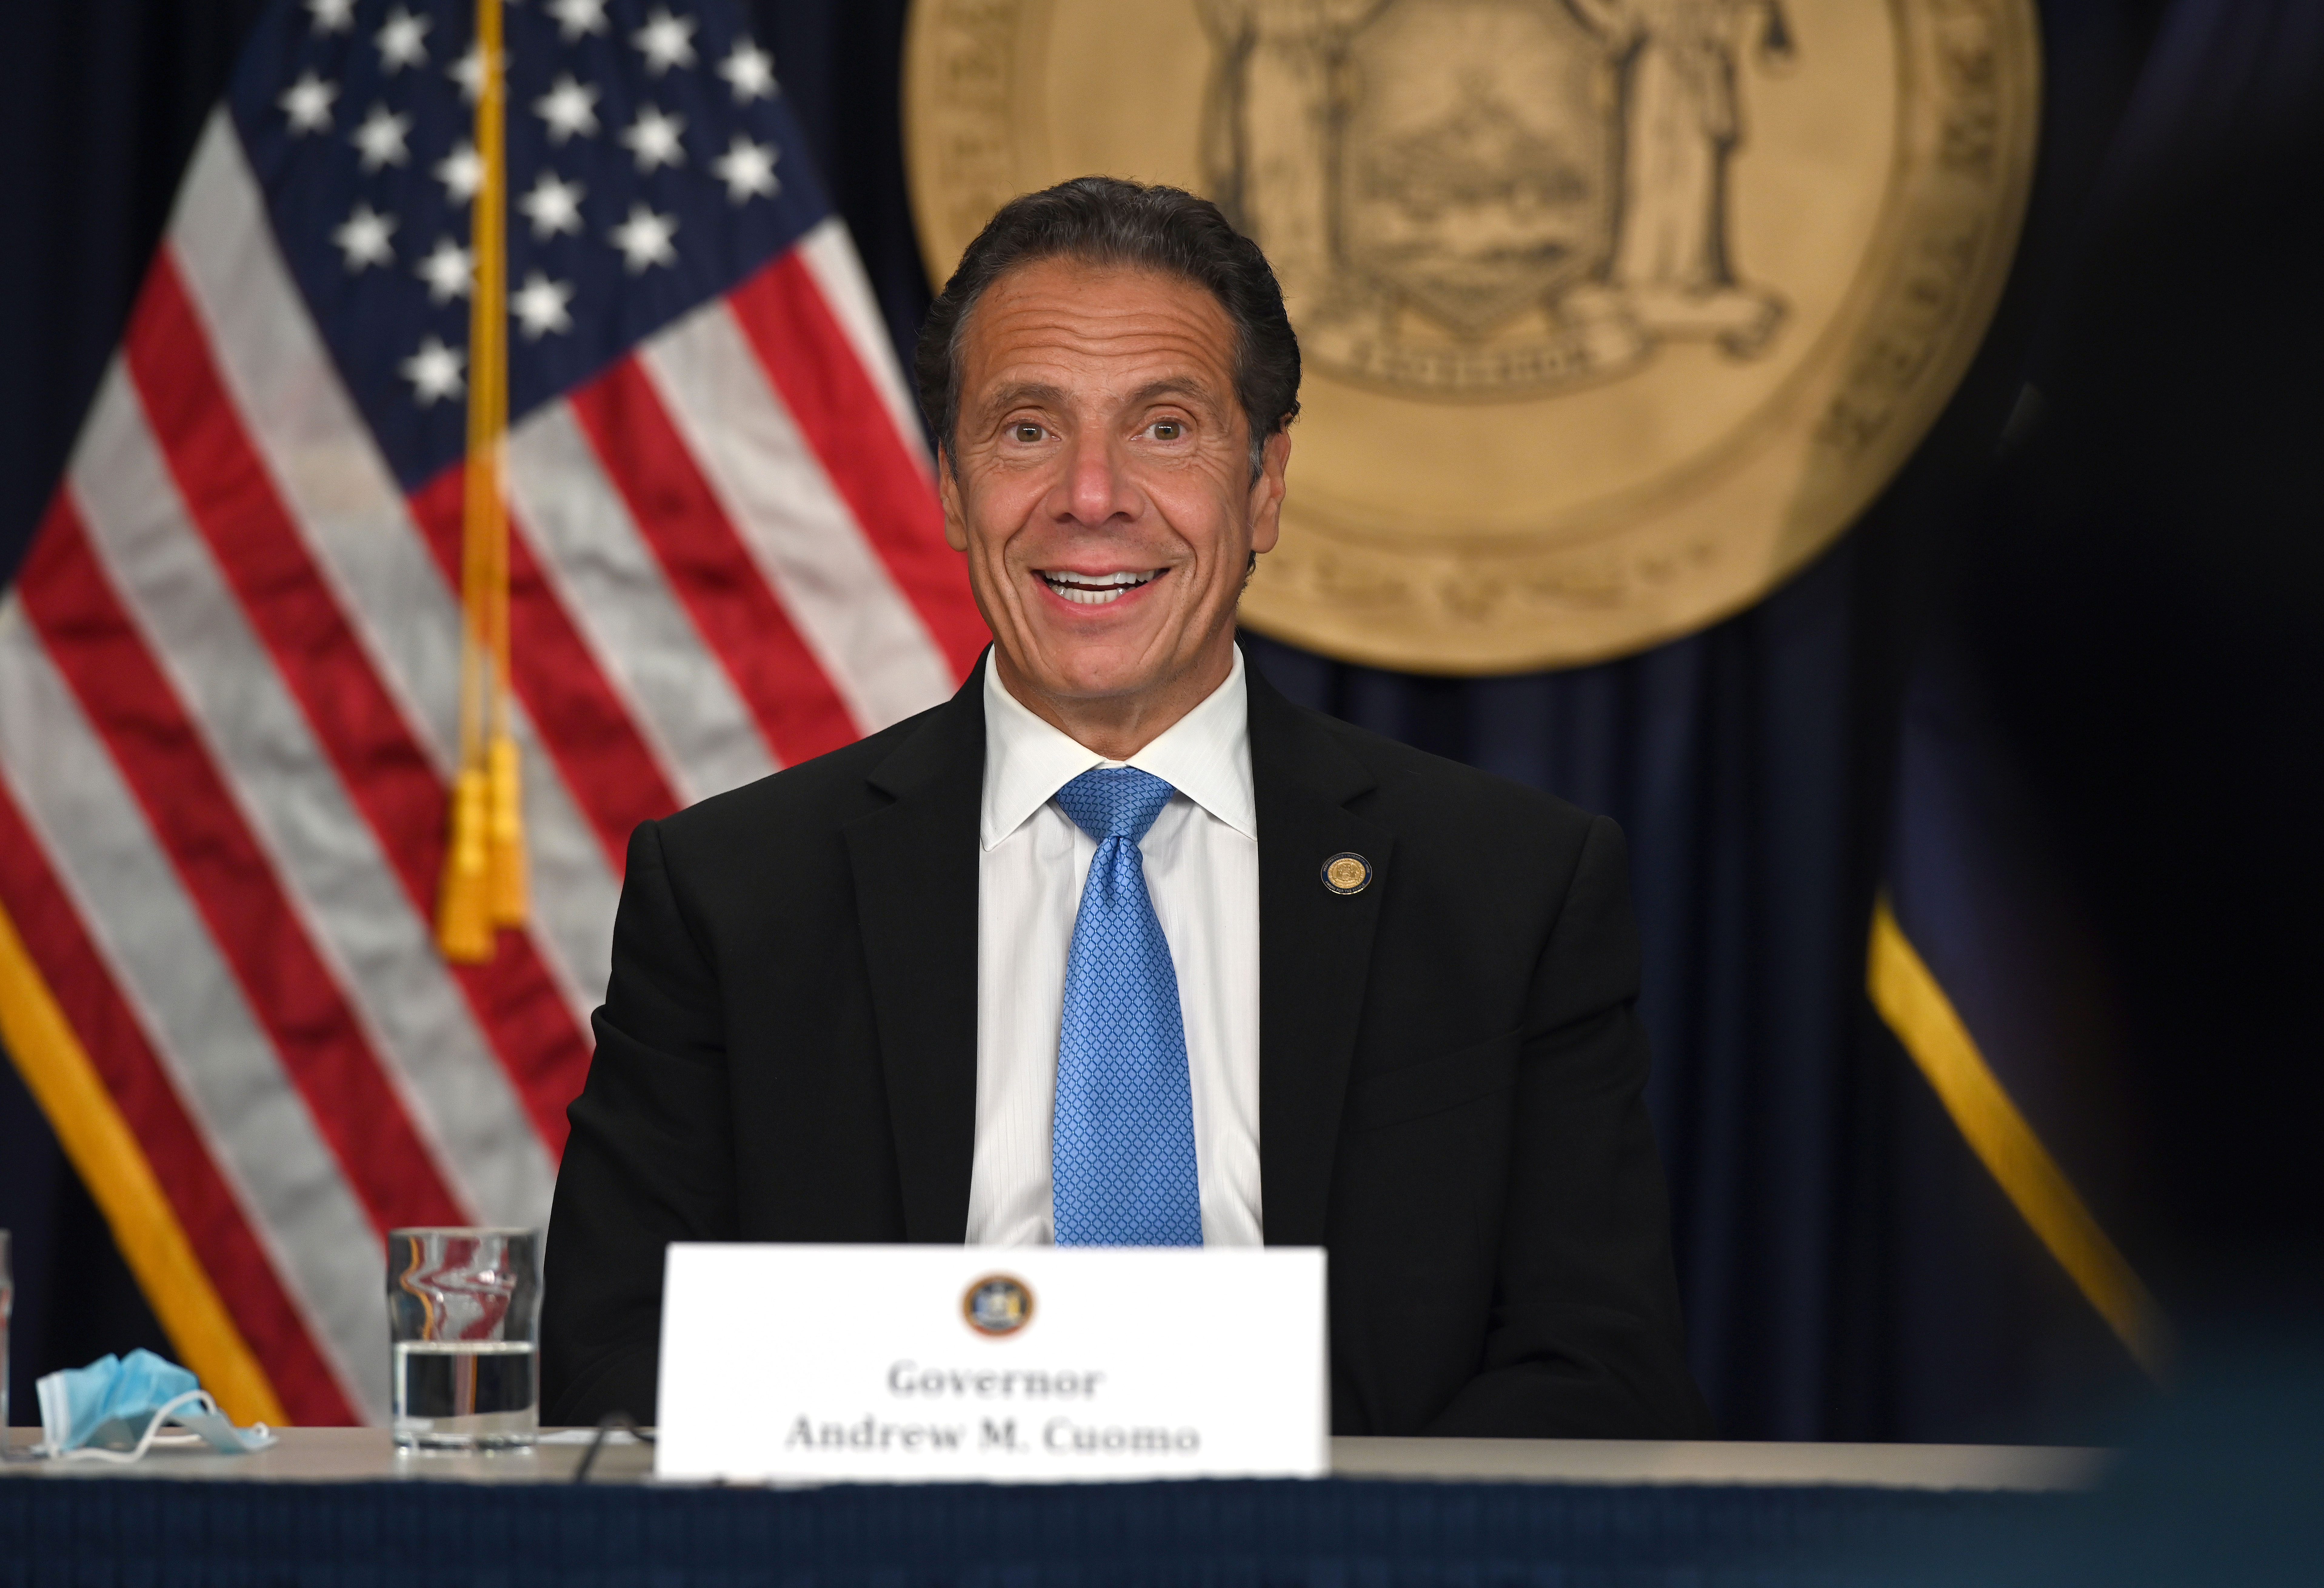 Gov. Cuomo May Deploy the National Guard to Staff Polling Places on Election Day